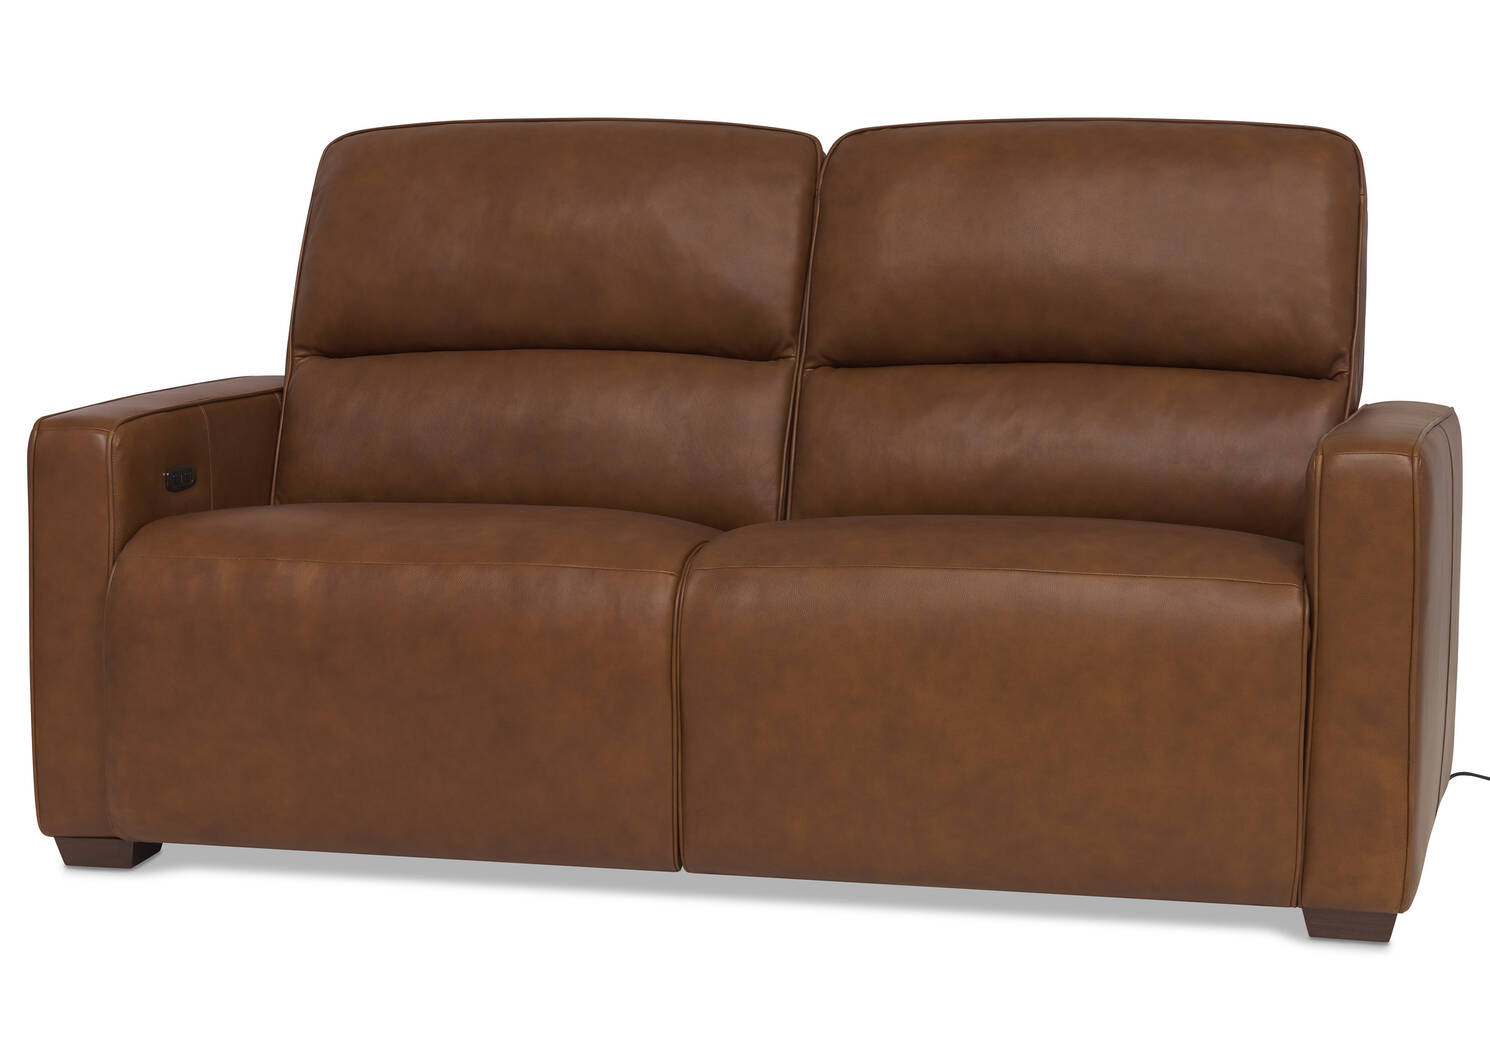 Reese Leather Reclining Sofa -Arlo Rum